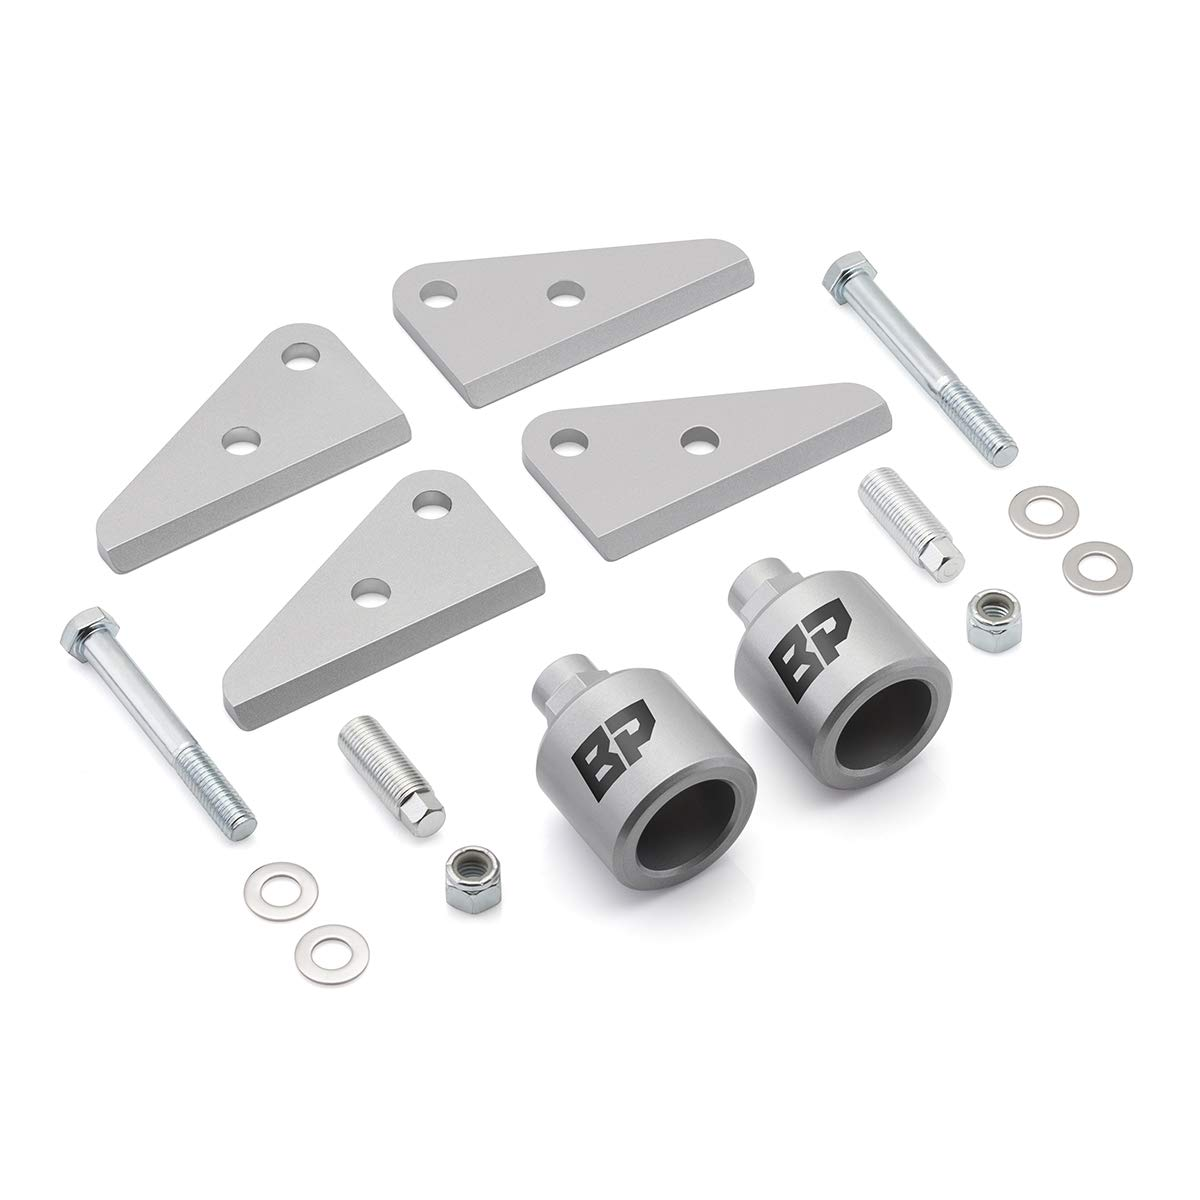 "BlackPath - Fits Polaris 2"" Front + Rear Lift Kit Ranger 500 + 700 ATV Suspension Lift (Silver) T6 Billet"